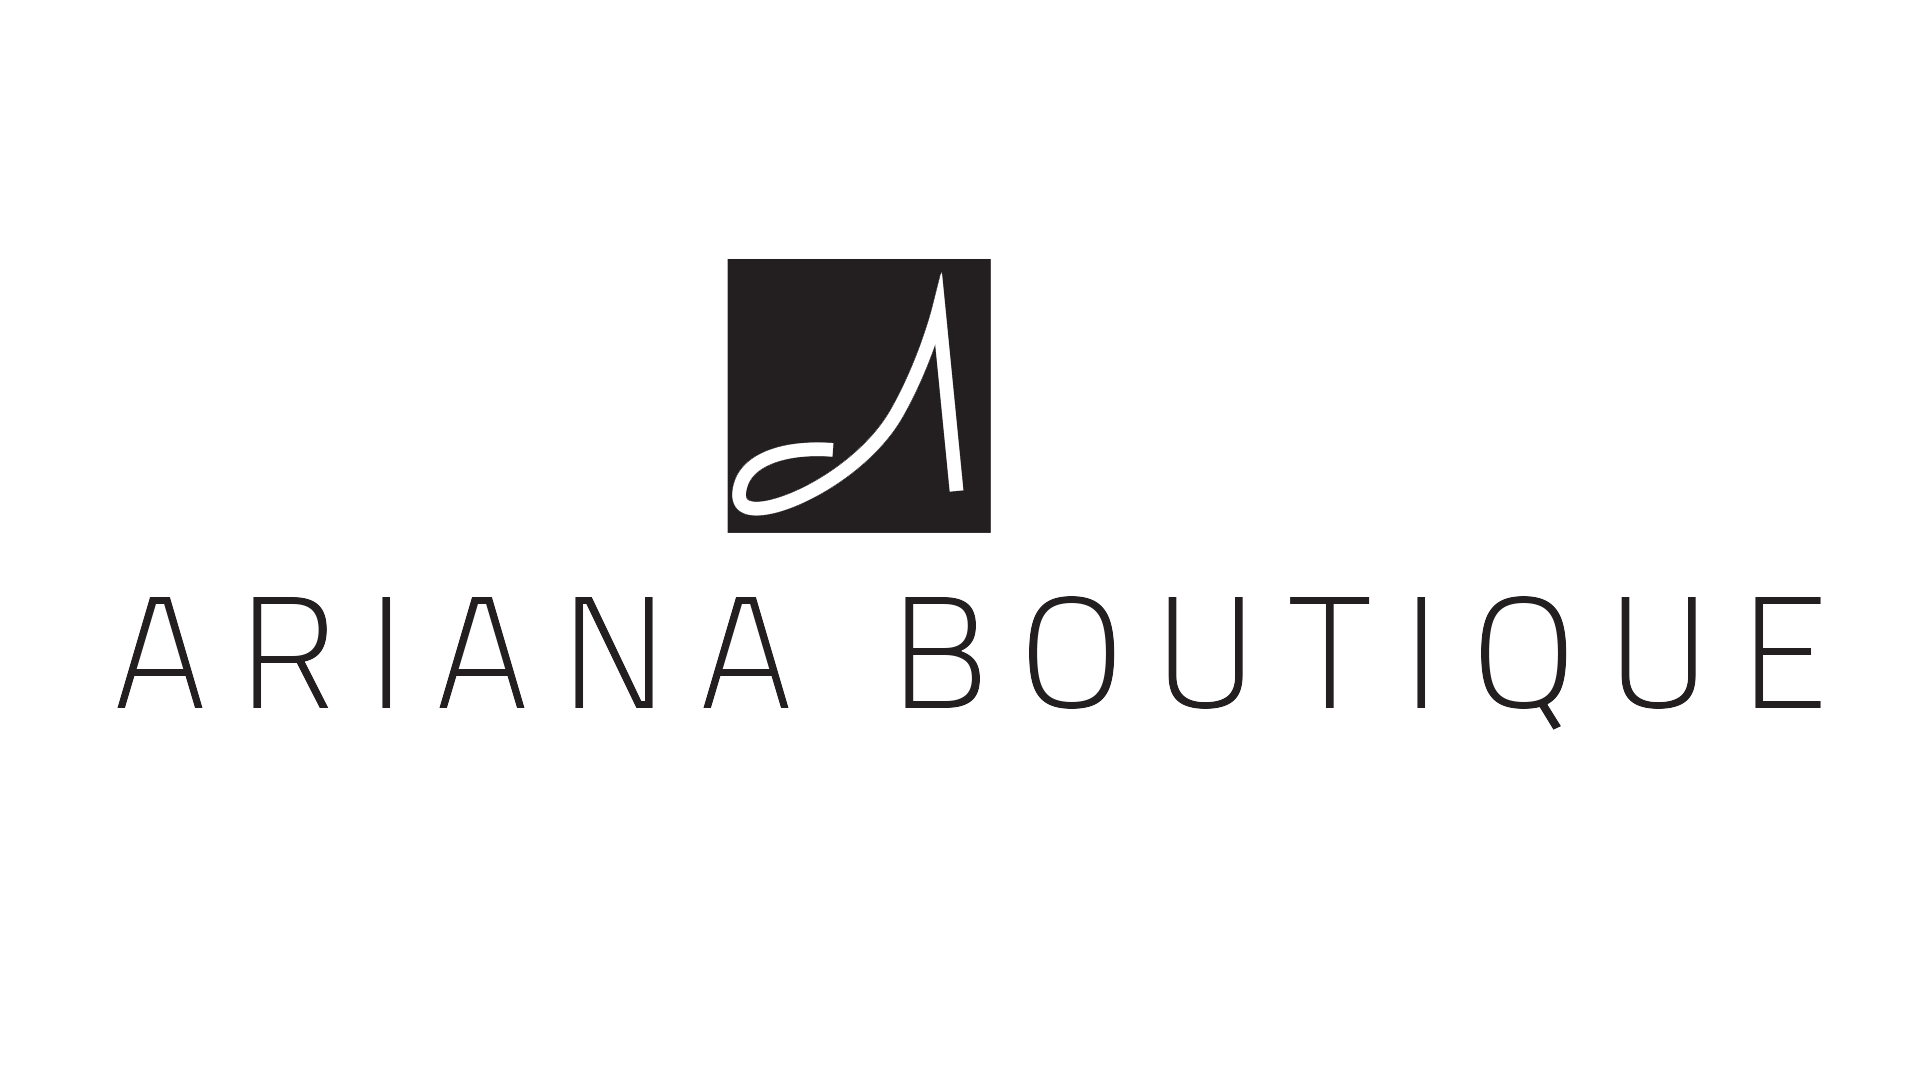 Ariana Boutique